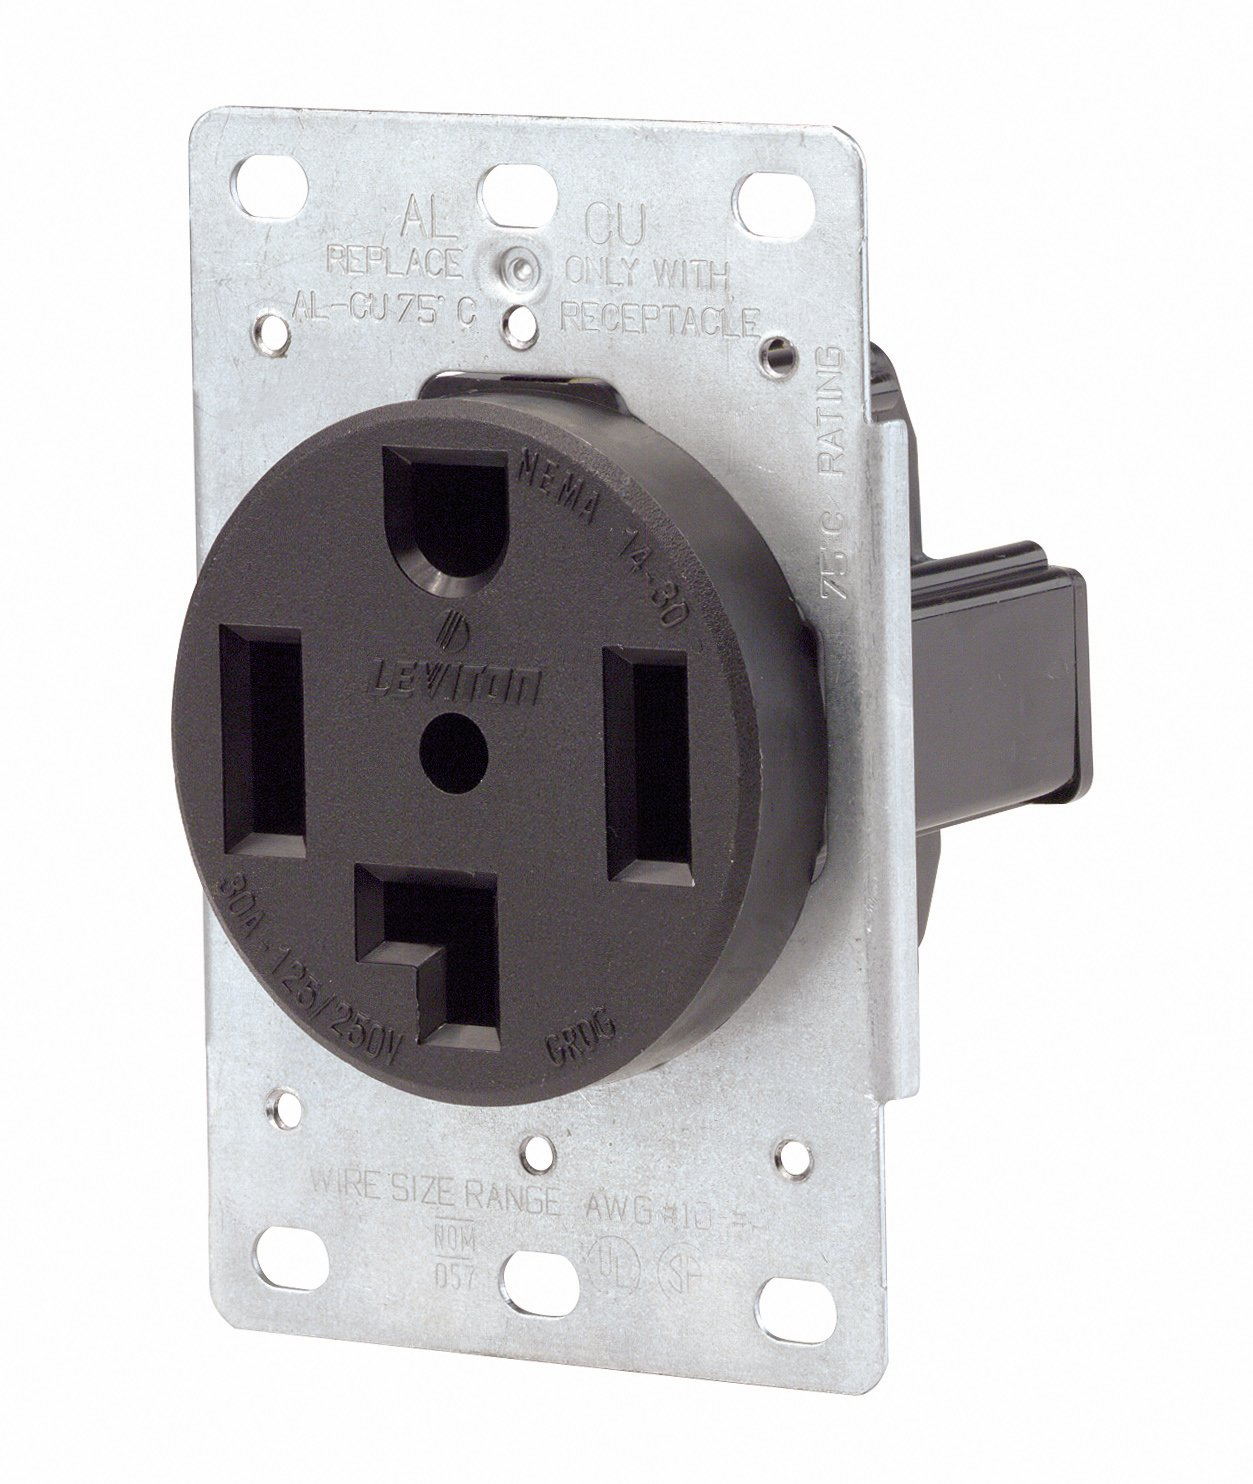 Leviton 071 00278 000 4 Wire 30 Amp 250 Volt Flush Mount